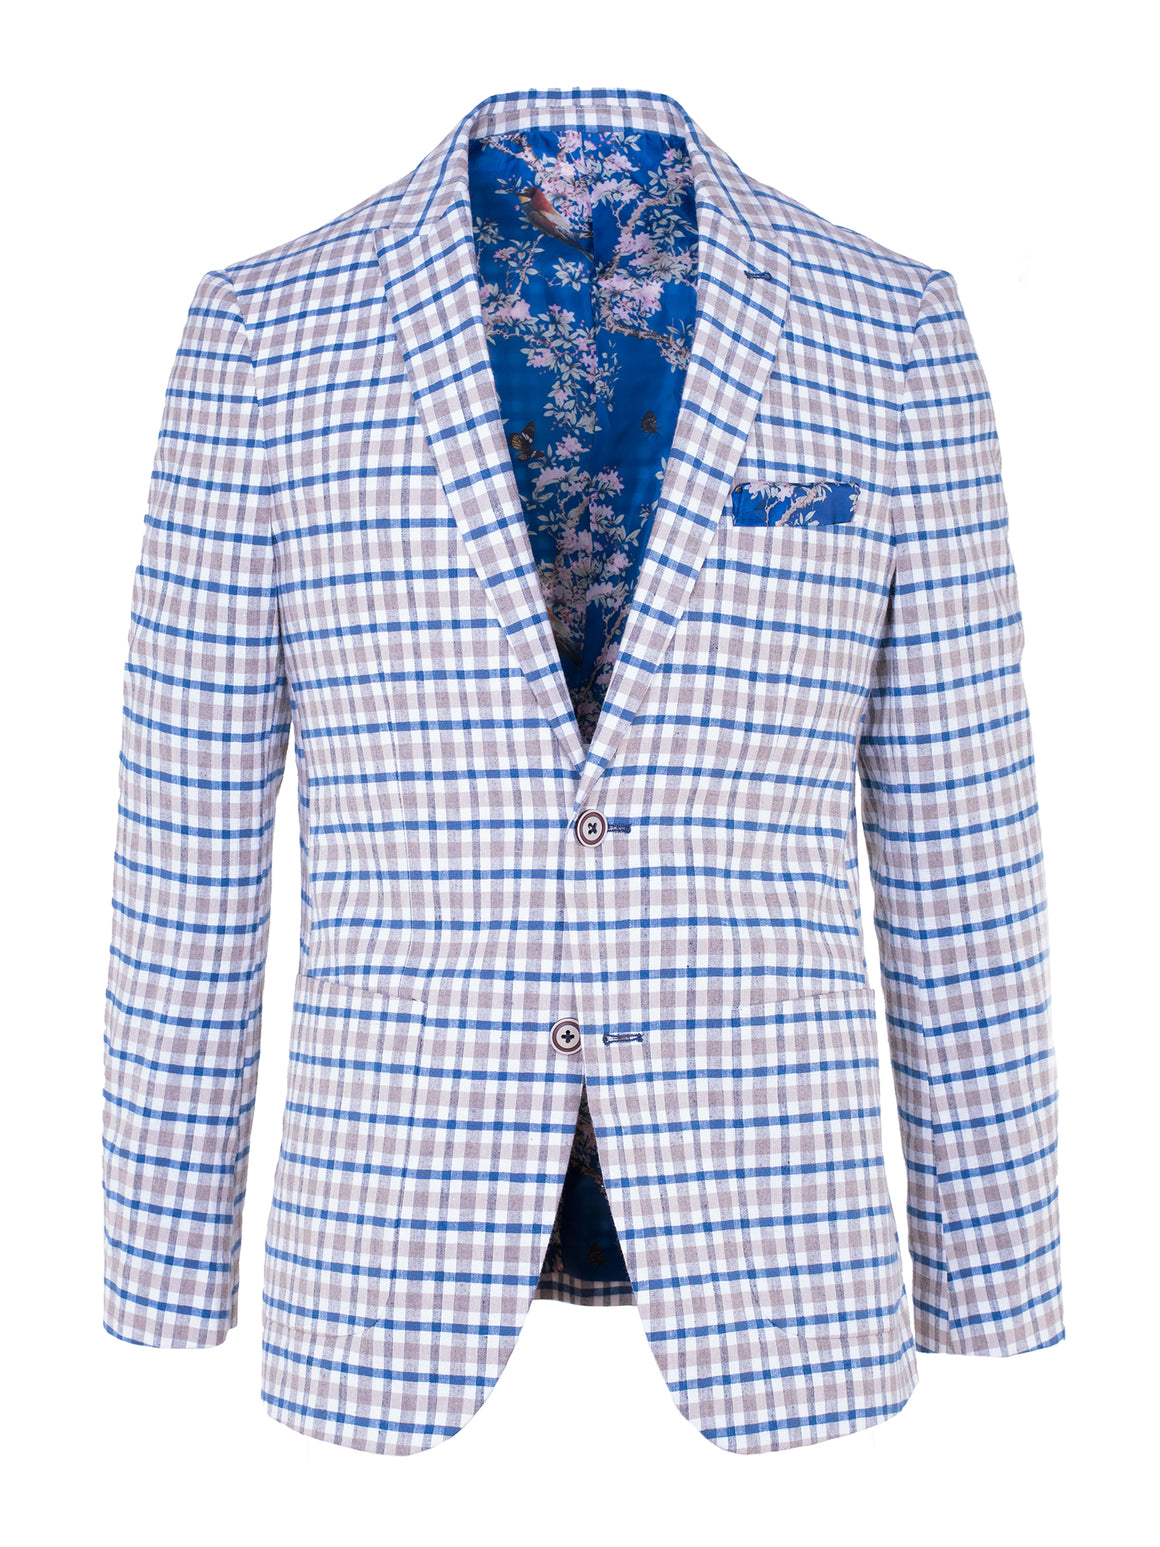 Ashton Peak Blazer - Tan & Blue Plaid